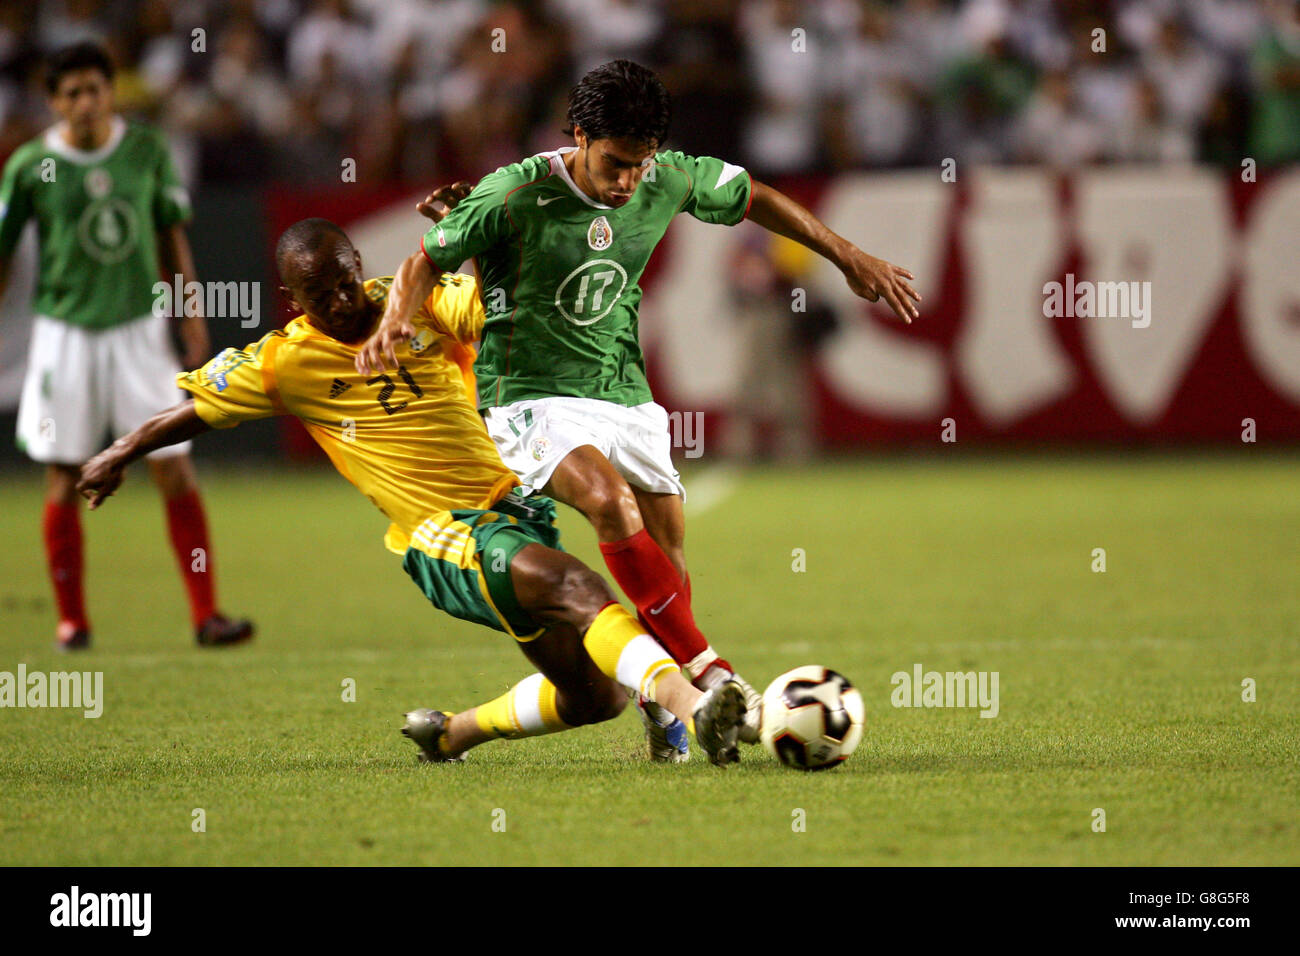 Gift leremi stock photos gift leremi stock images alamy soccer concacaf gold cup 2005 group c south africa v mexico the negle Choice Image